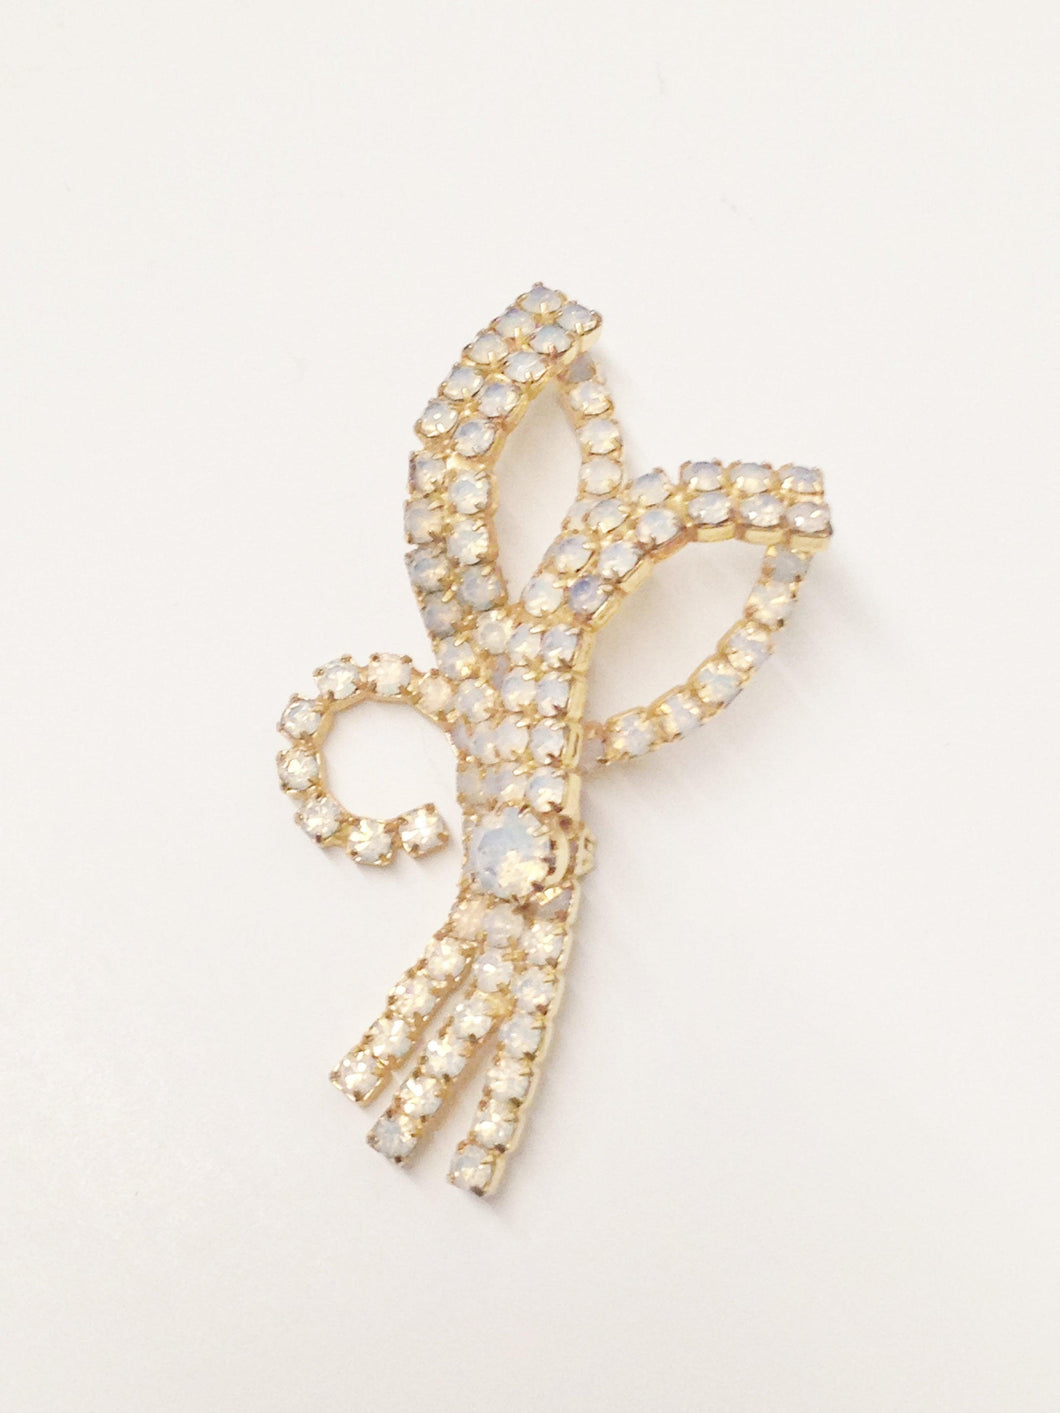 www.hersandhistreasures.com/products/Opaque-White-Rhinestone-Brooch-Pin